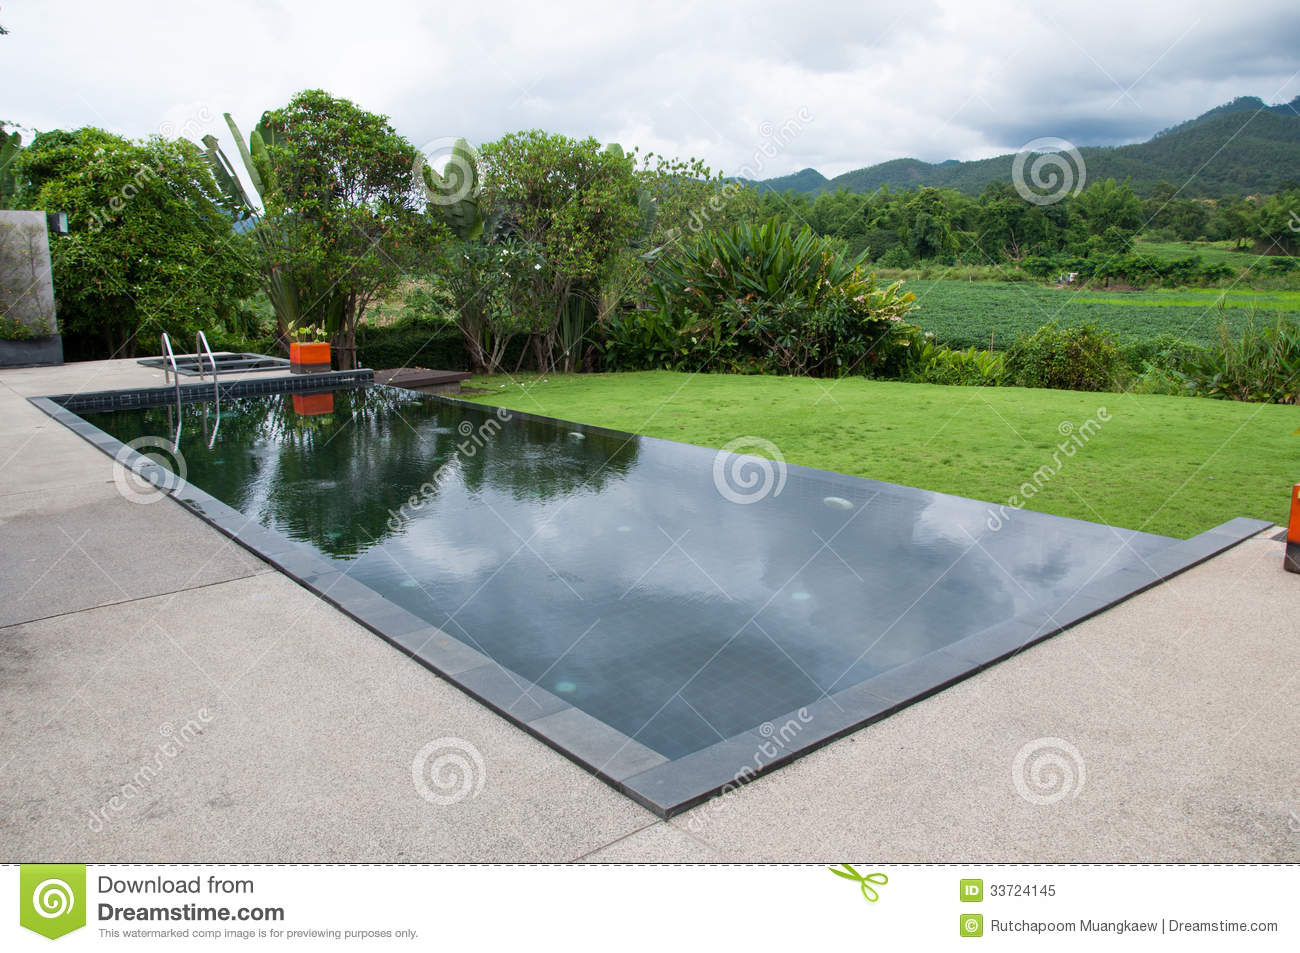 The Black Swimming Pool Royalty Free Stock Photo Image 33724145